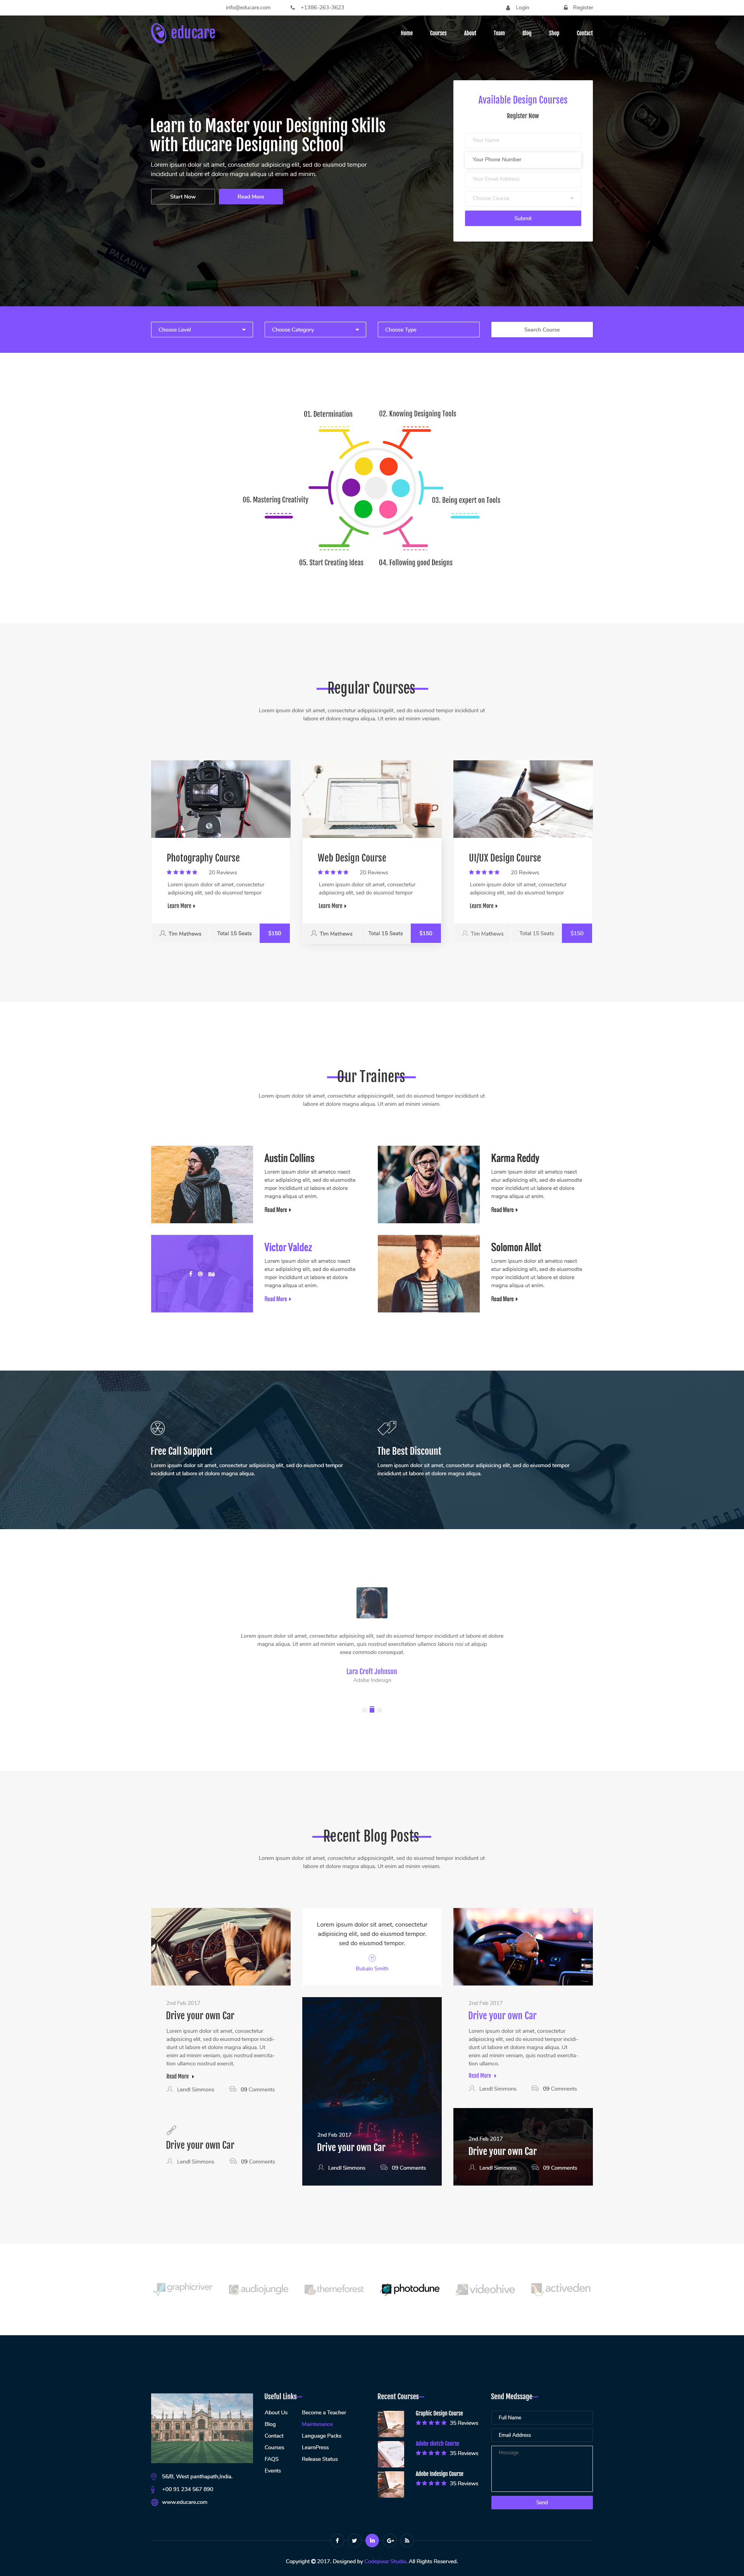 E-LMS - Learning Management System | Material PSD Template by CodePixar